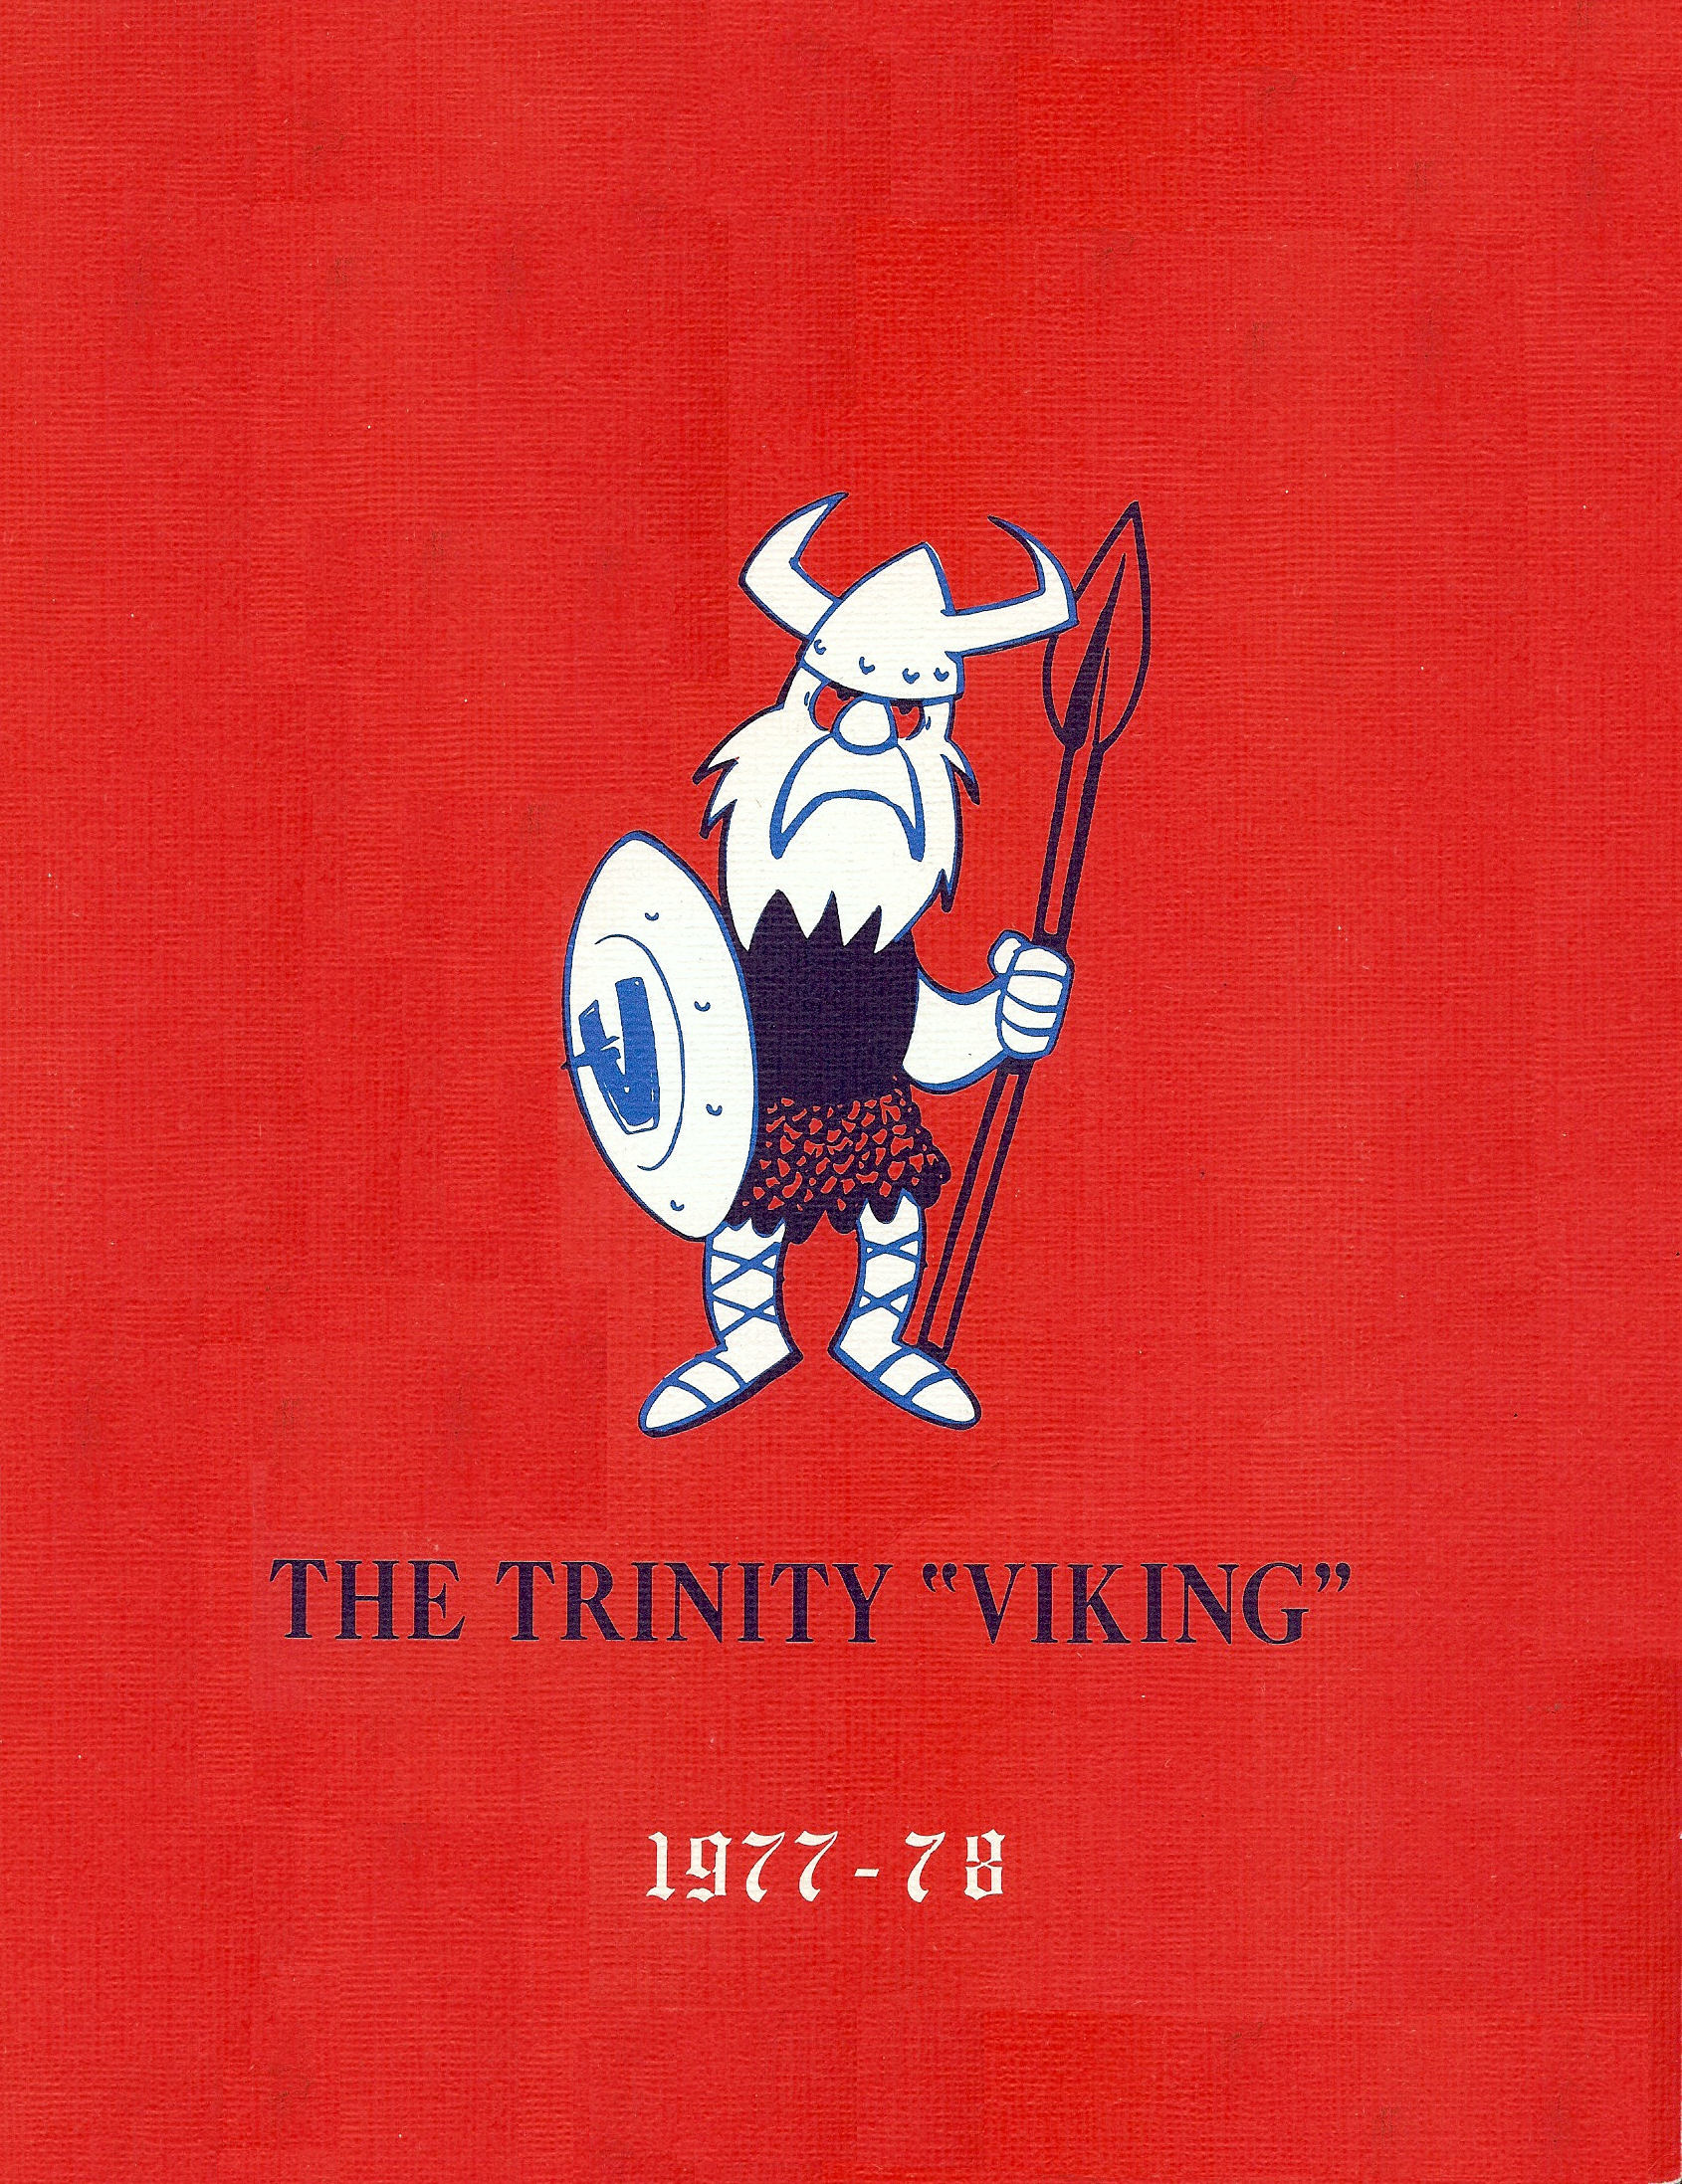 77-78 Yearbook Cover